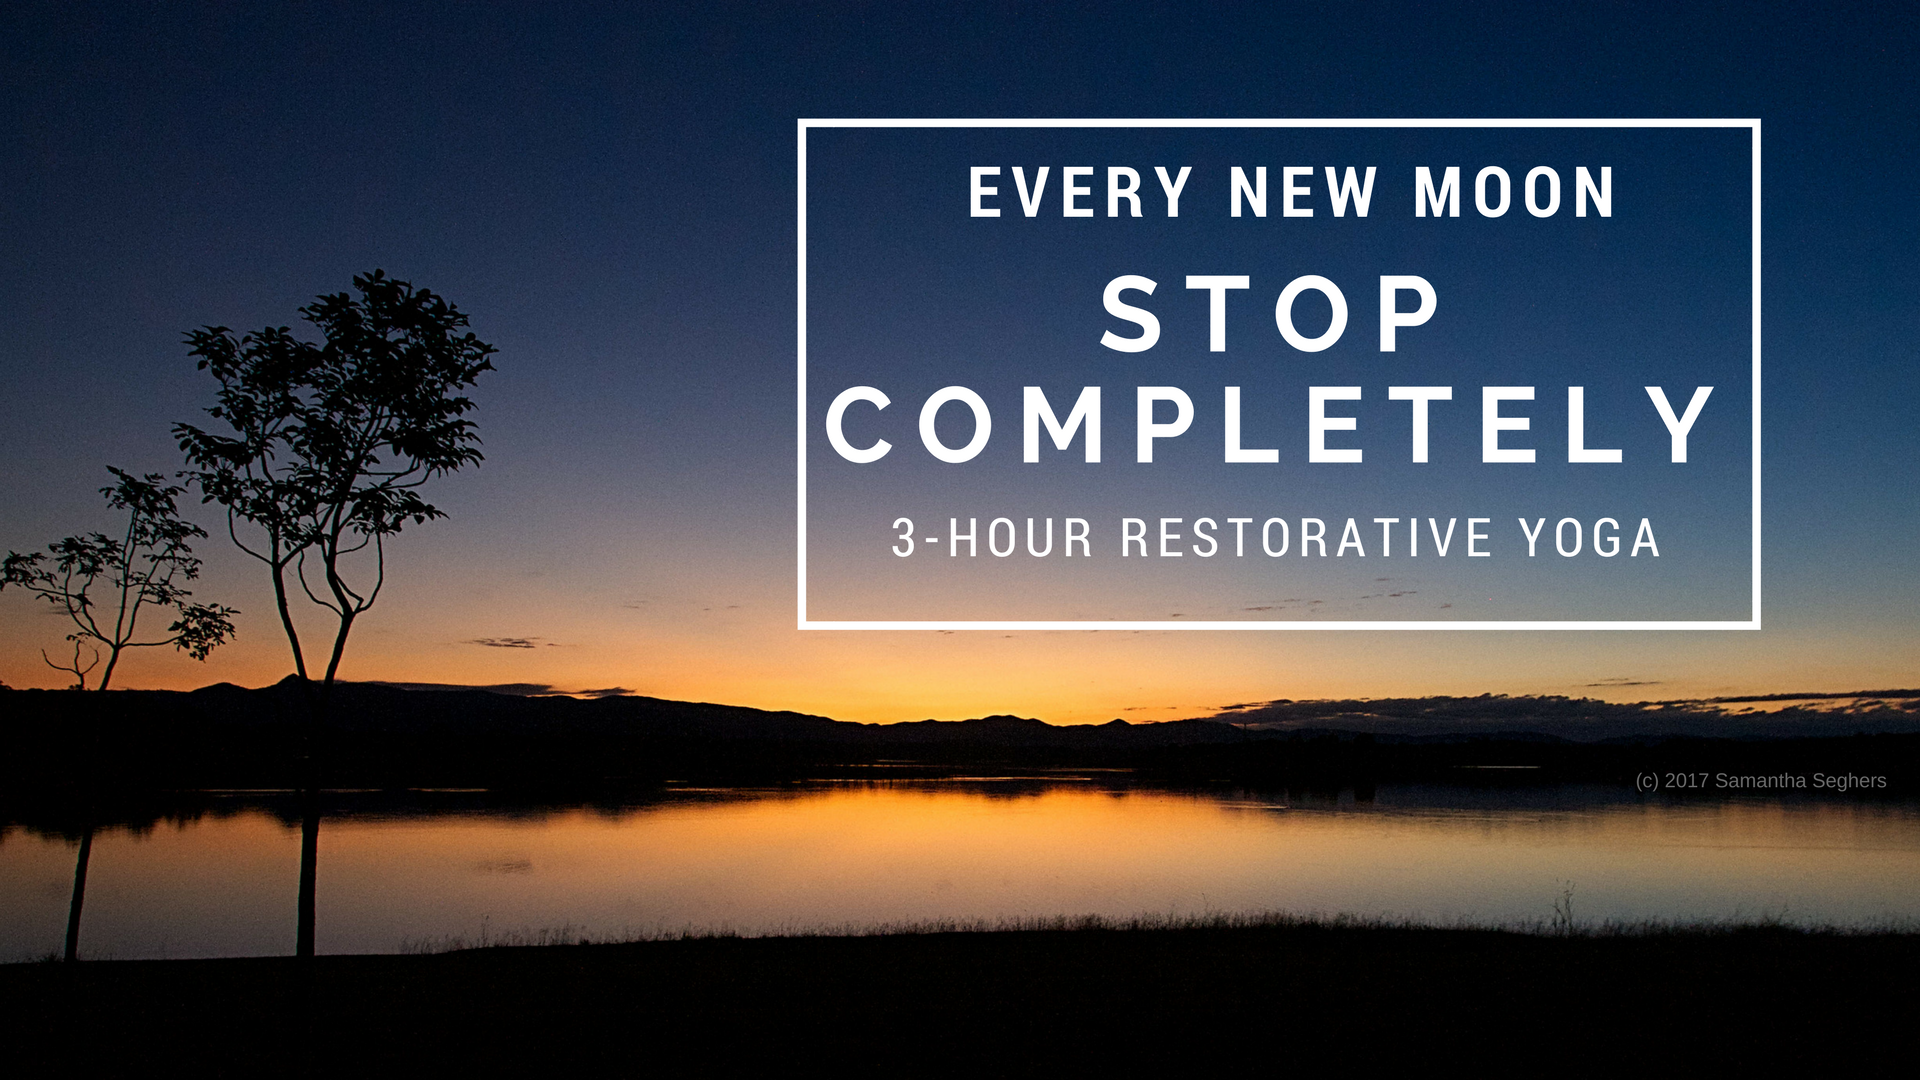 Every new moon FB cover.png